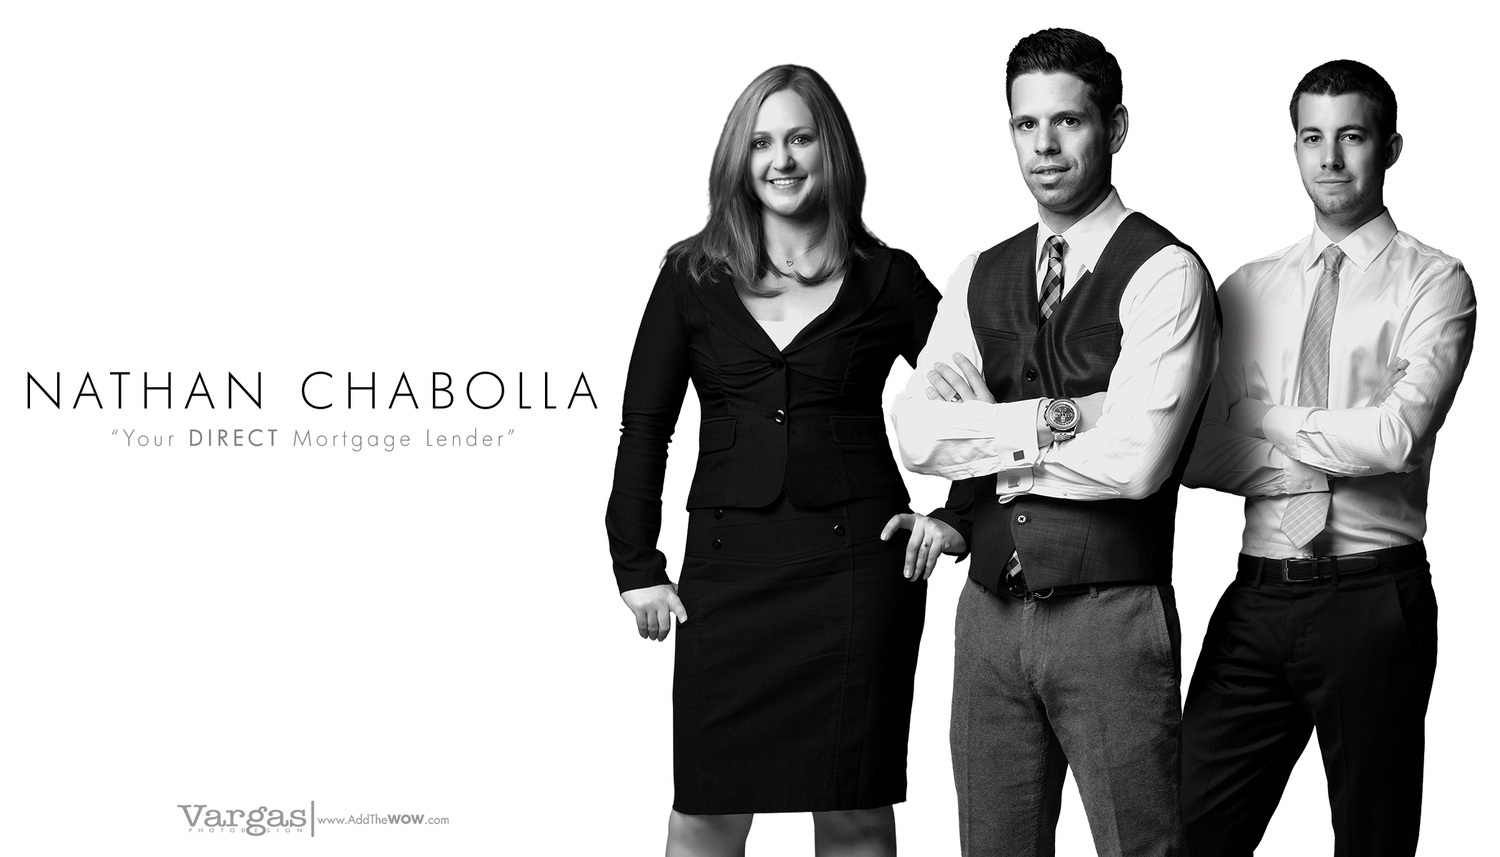 Nathan Chabolla Mortgage Loan Officer